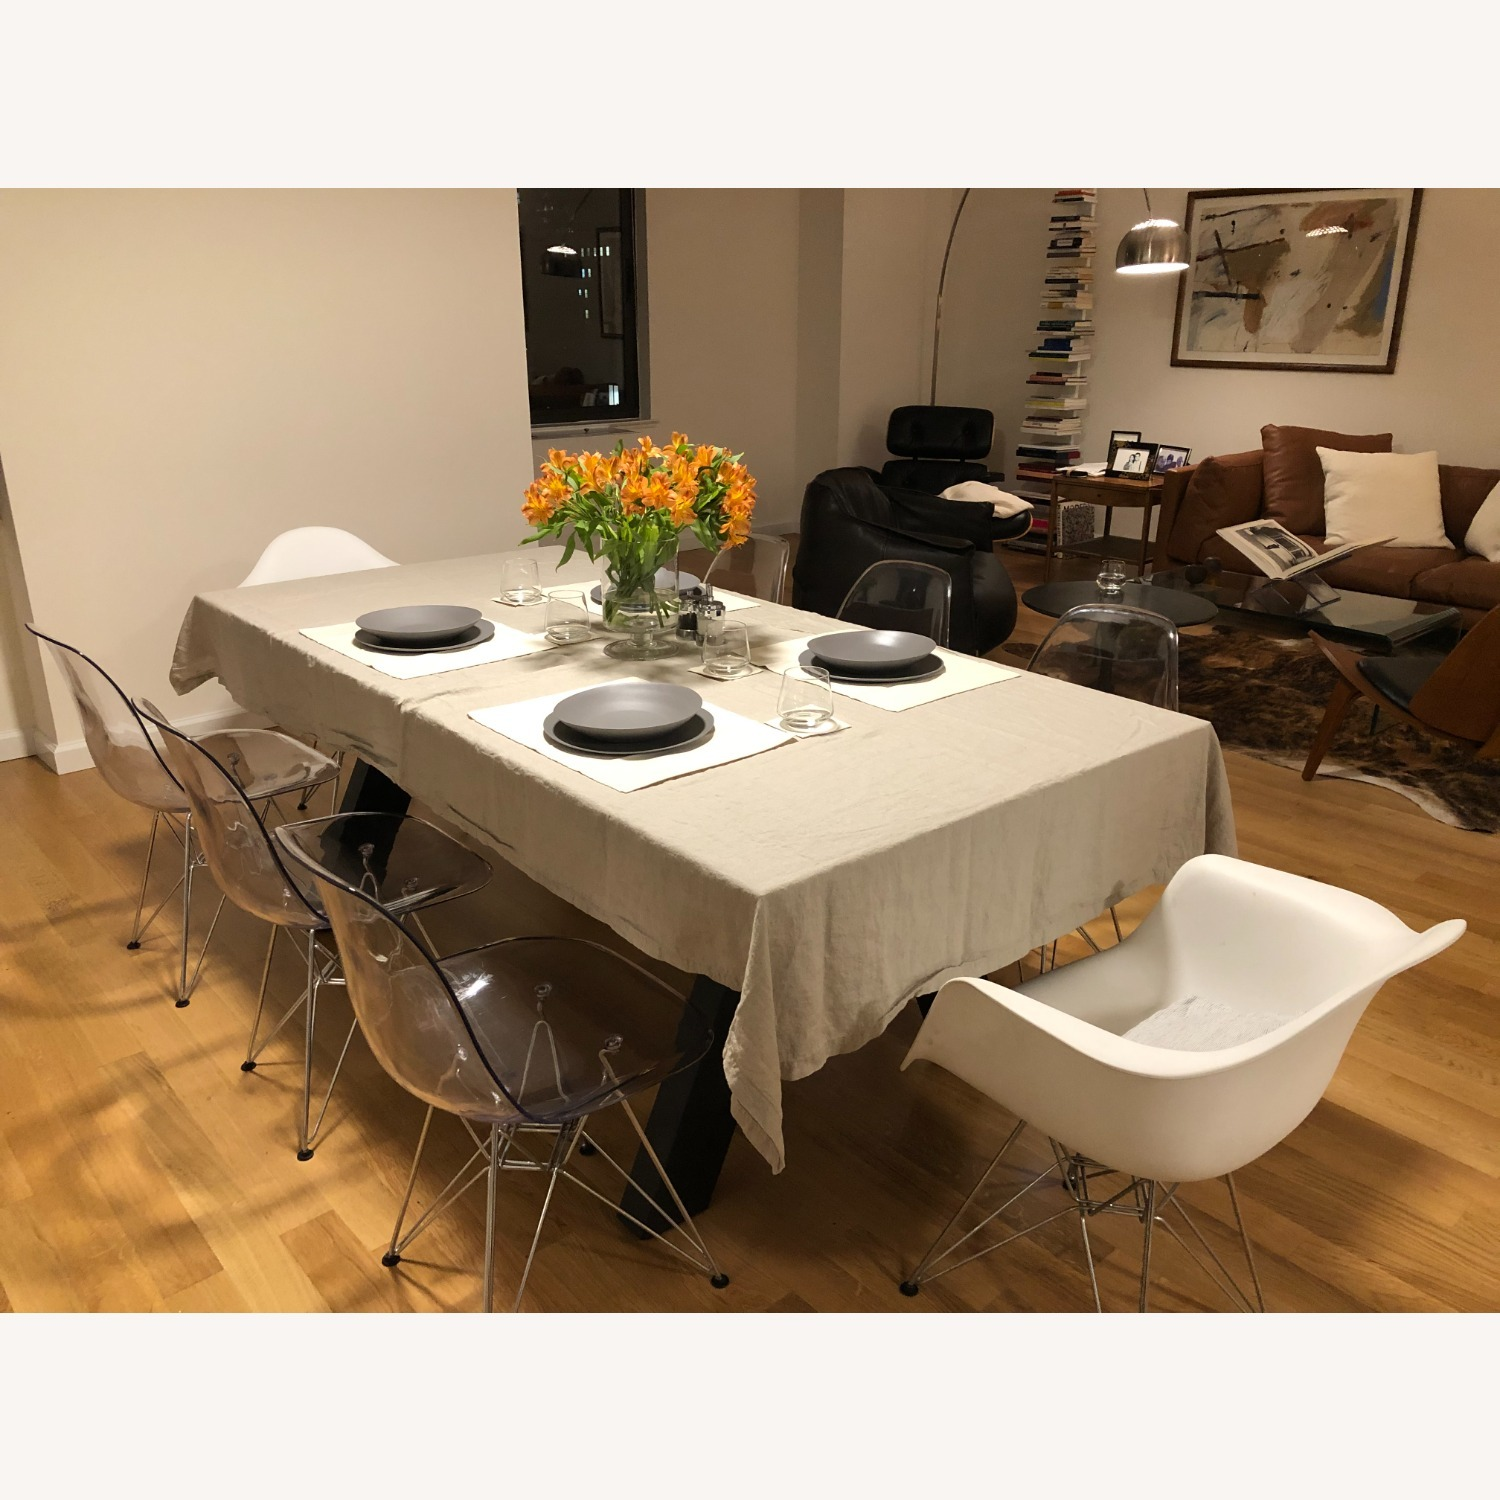 Sit Down New York Mid-Century Dining Chairs - image-1